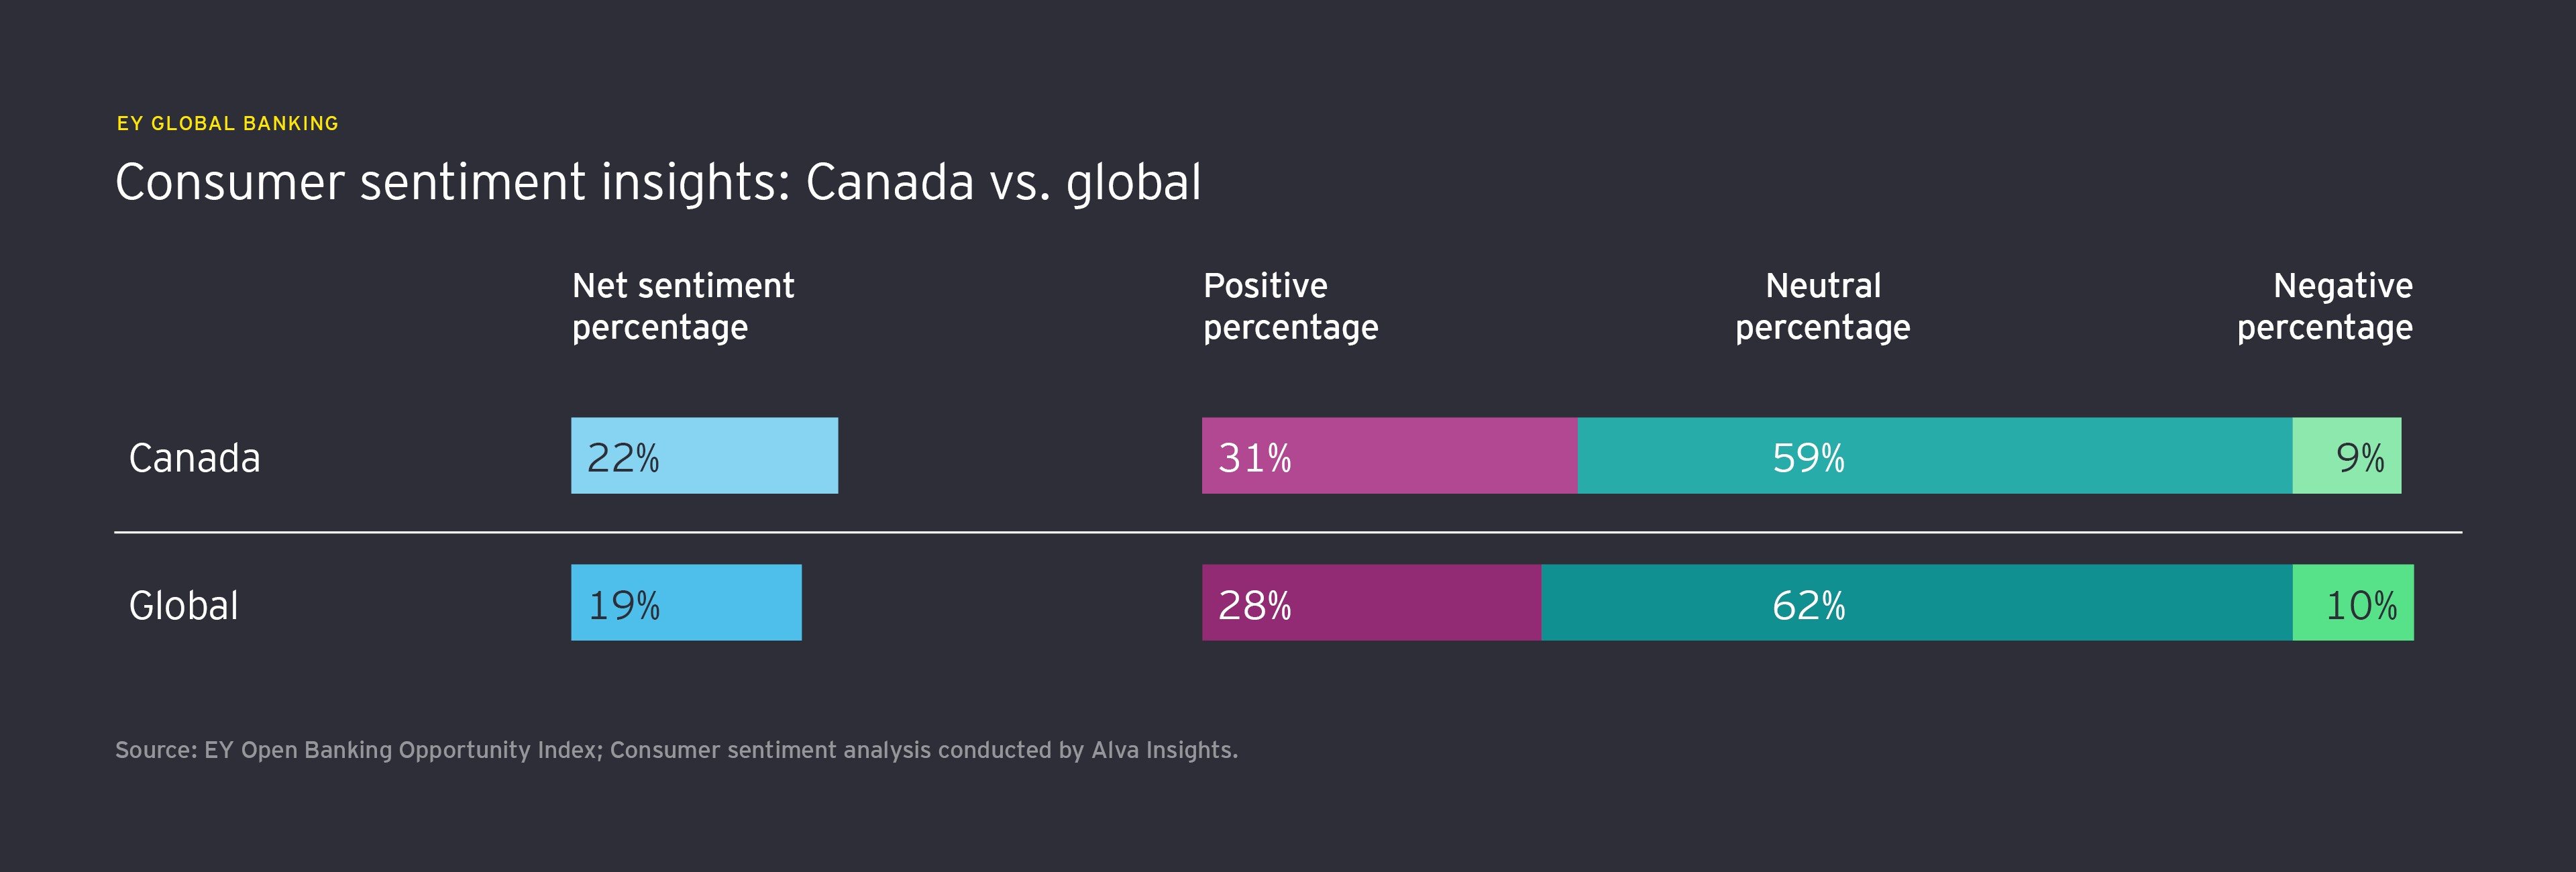 Consumer sentiment insights: Canada vs. global